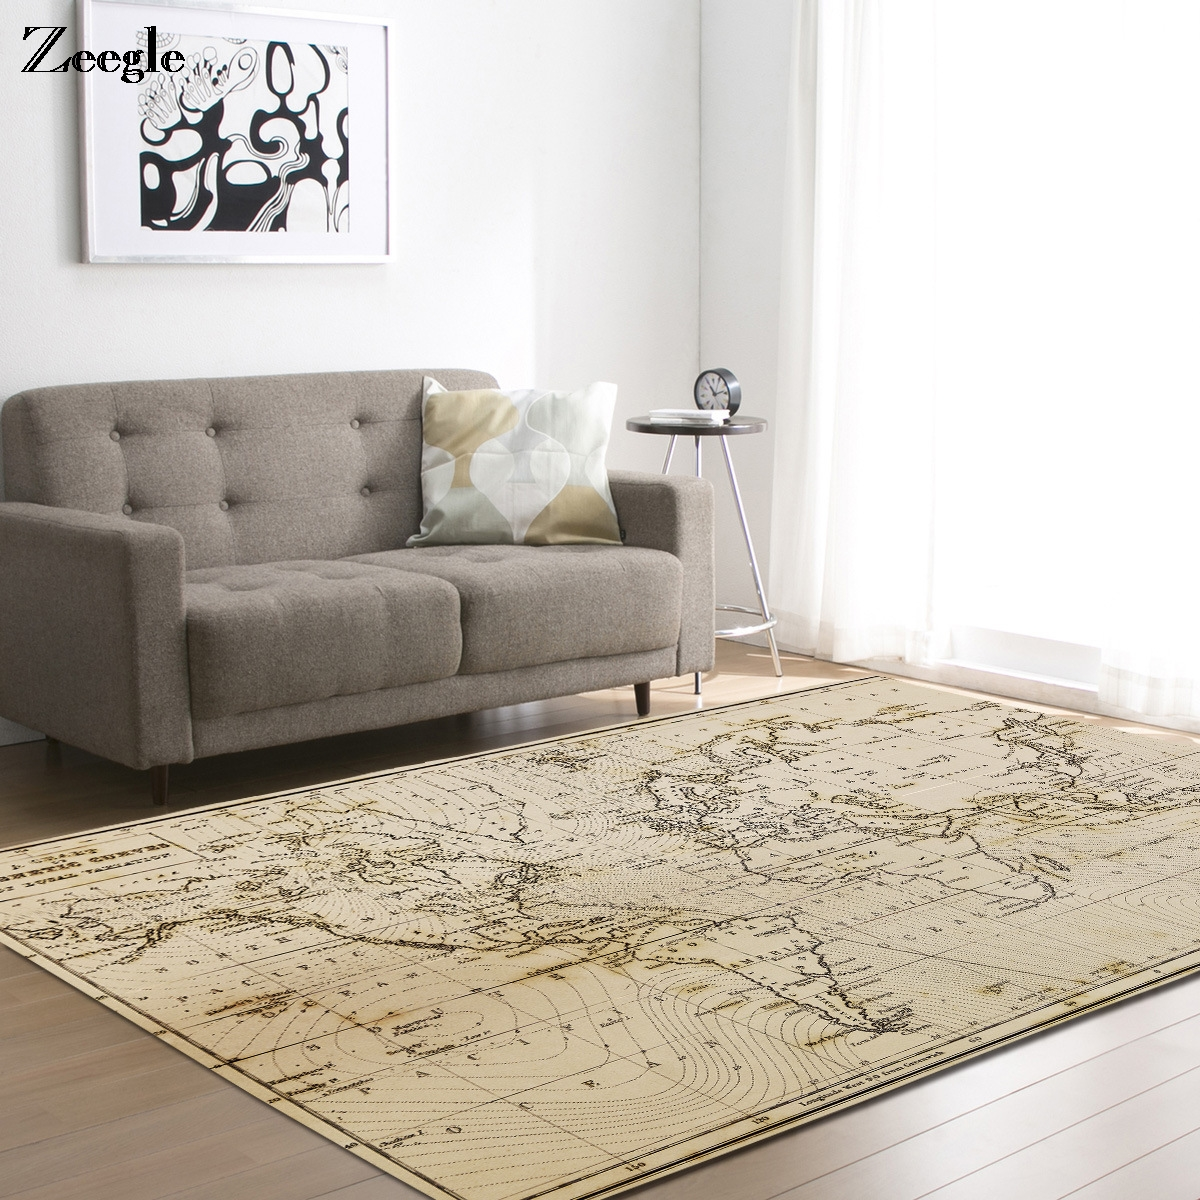 Zeegle World Map Pattern Carpets For Living Room Kids Bedroom Carpet Large Size Home Decor Mat Office Chair Floor Mats